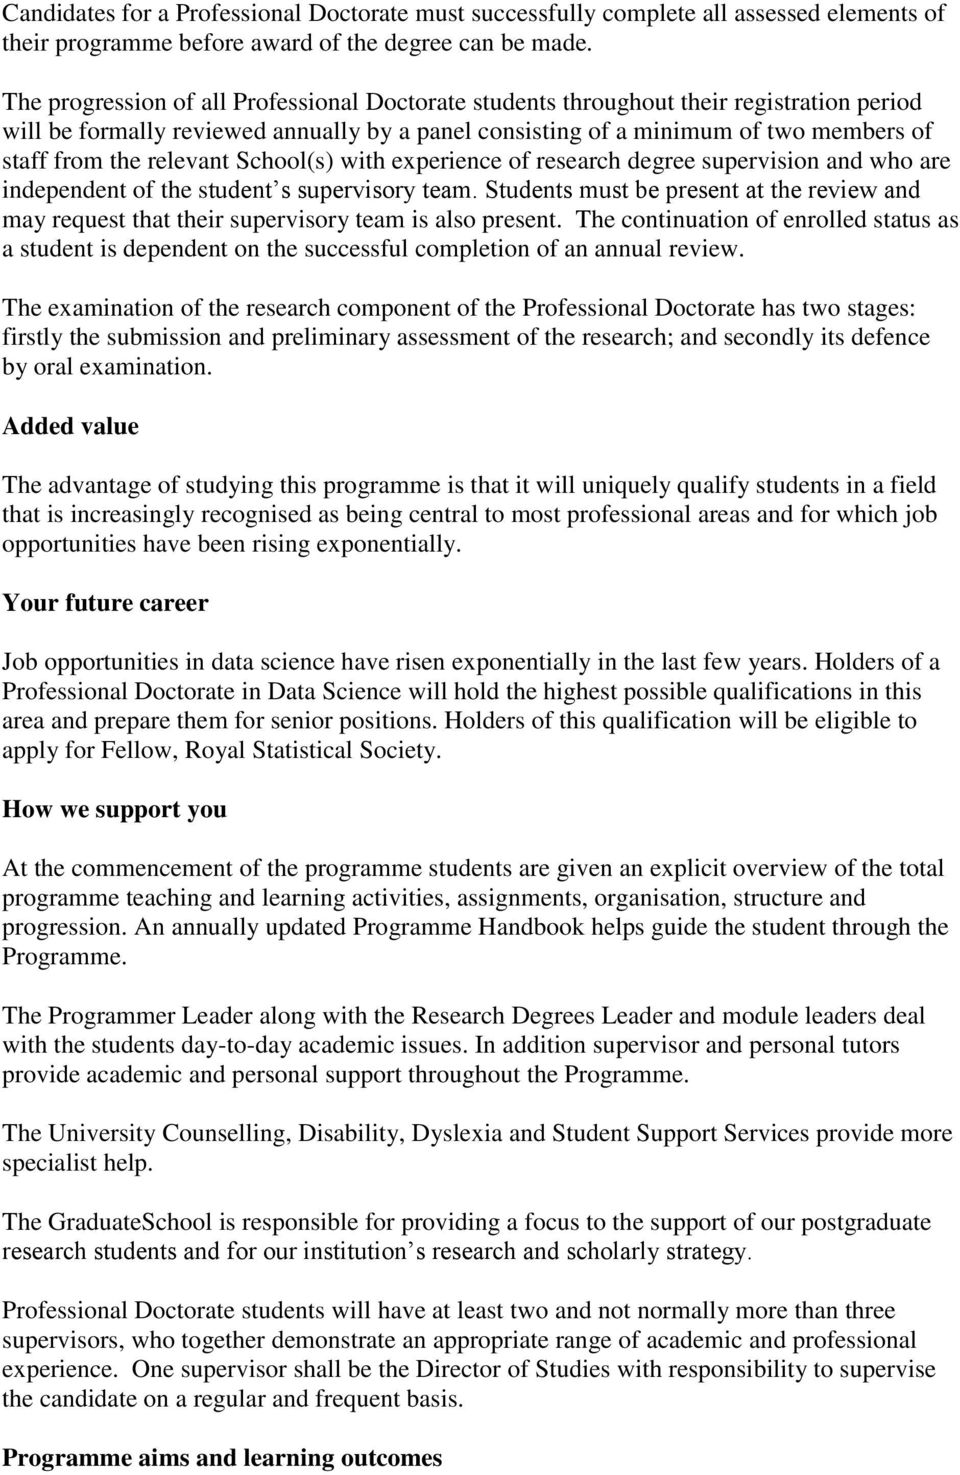 relevant School(s) with experience of research degree supervision and who are independent of the student s supervisory team.